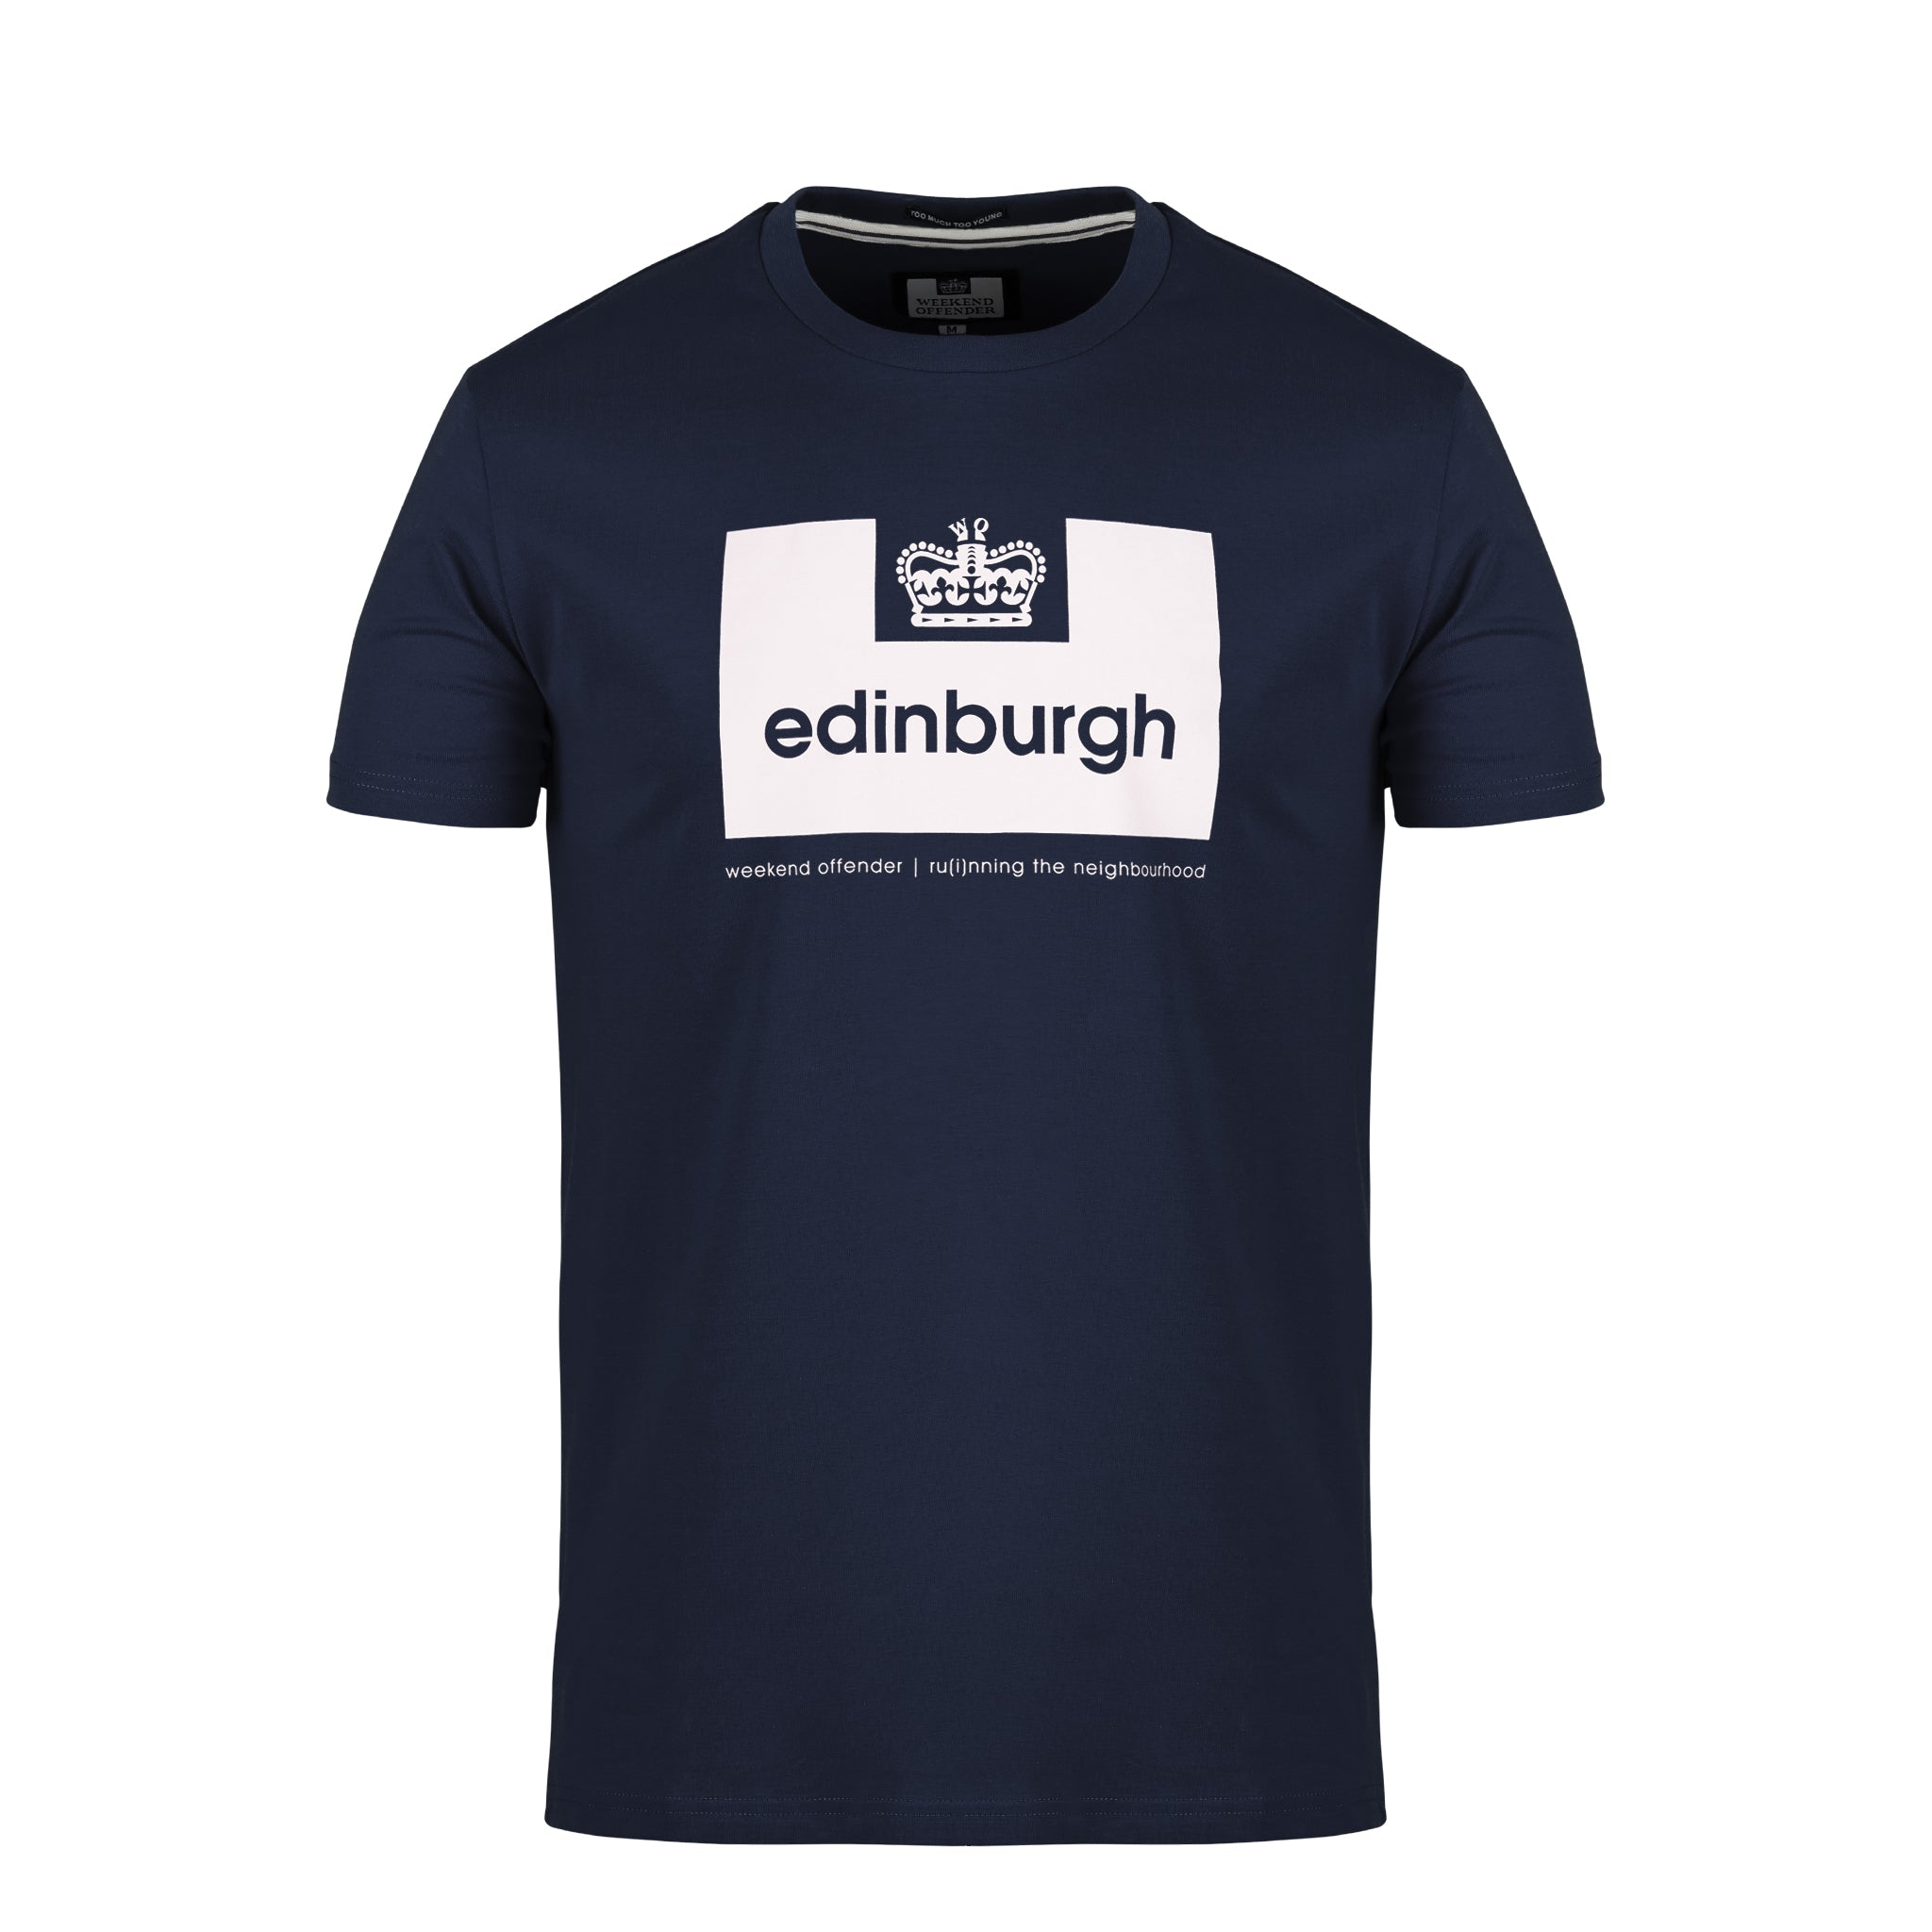 City Series 2 Edinburgh Navy